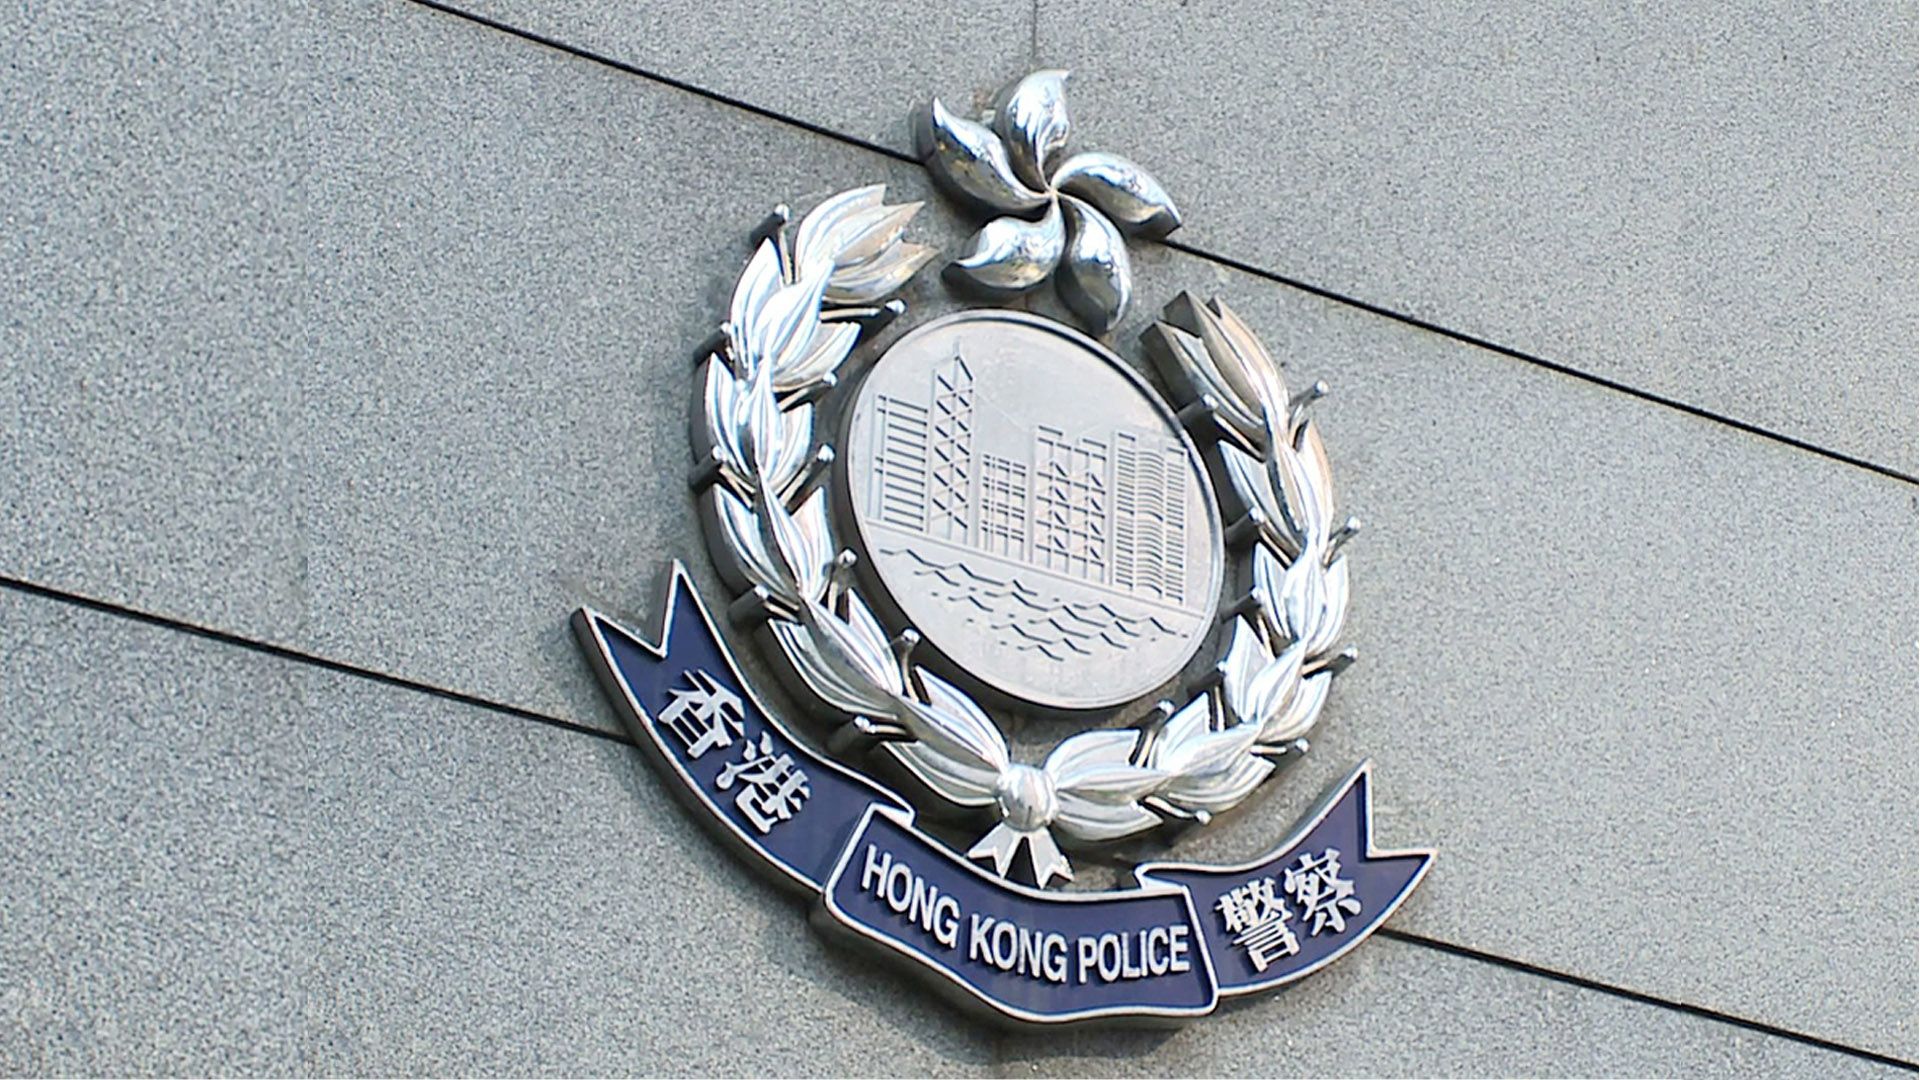 Whoever breaks the law will be brought to justice: HK police